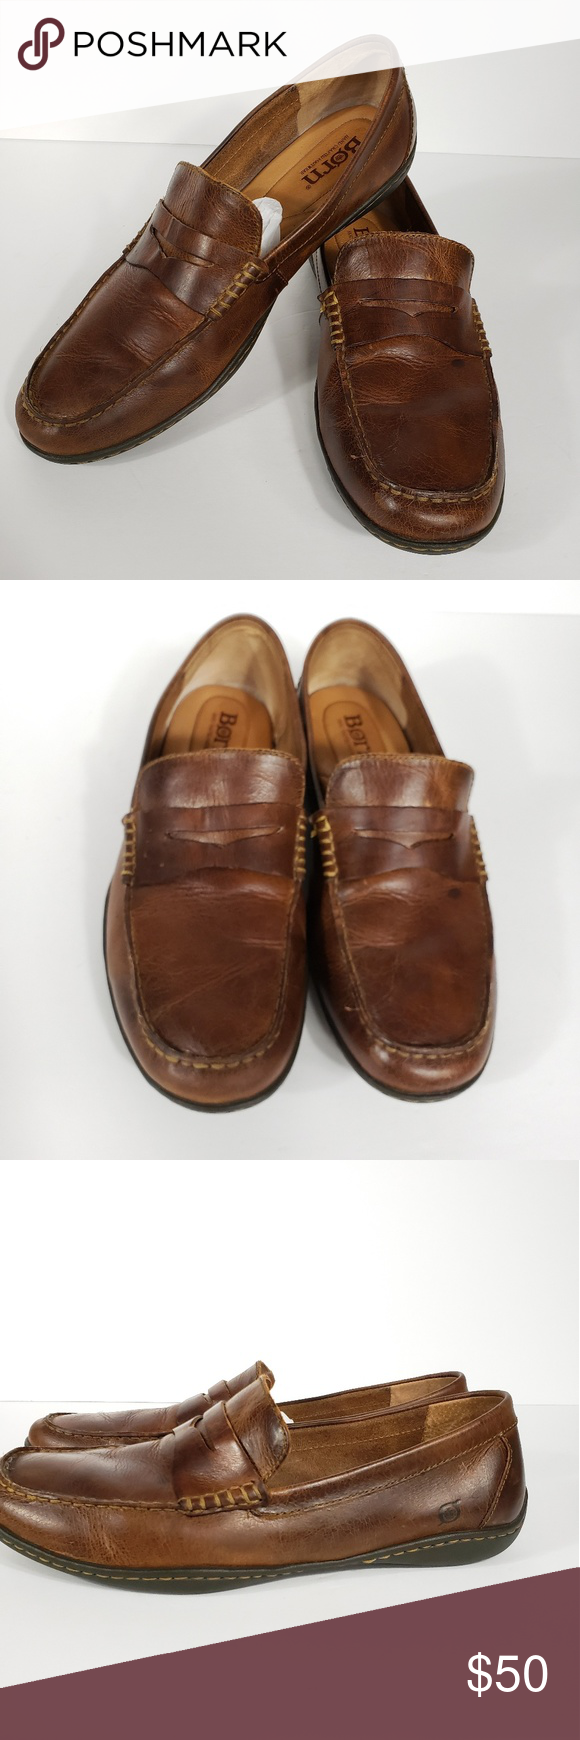 871833af56f Born Men s Simon Leather loafers Size 13 Born Men s Simon Leather Loafers  Color is Cymbal